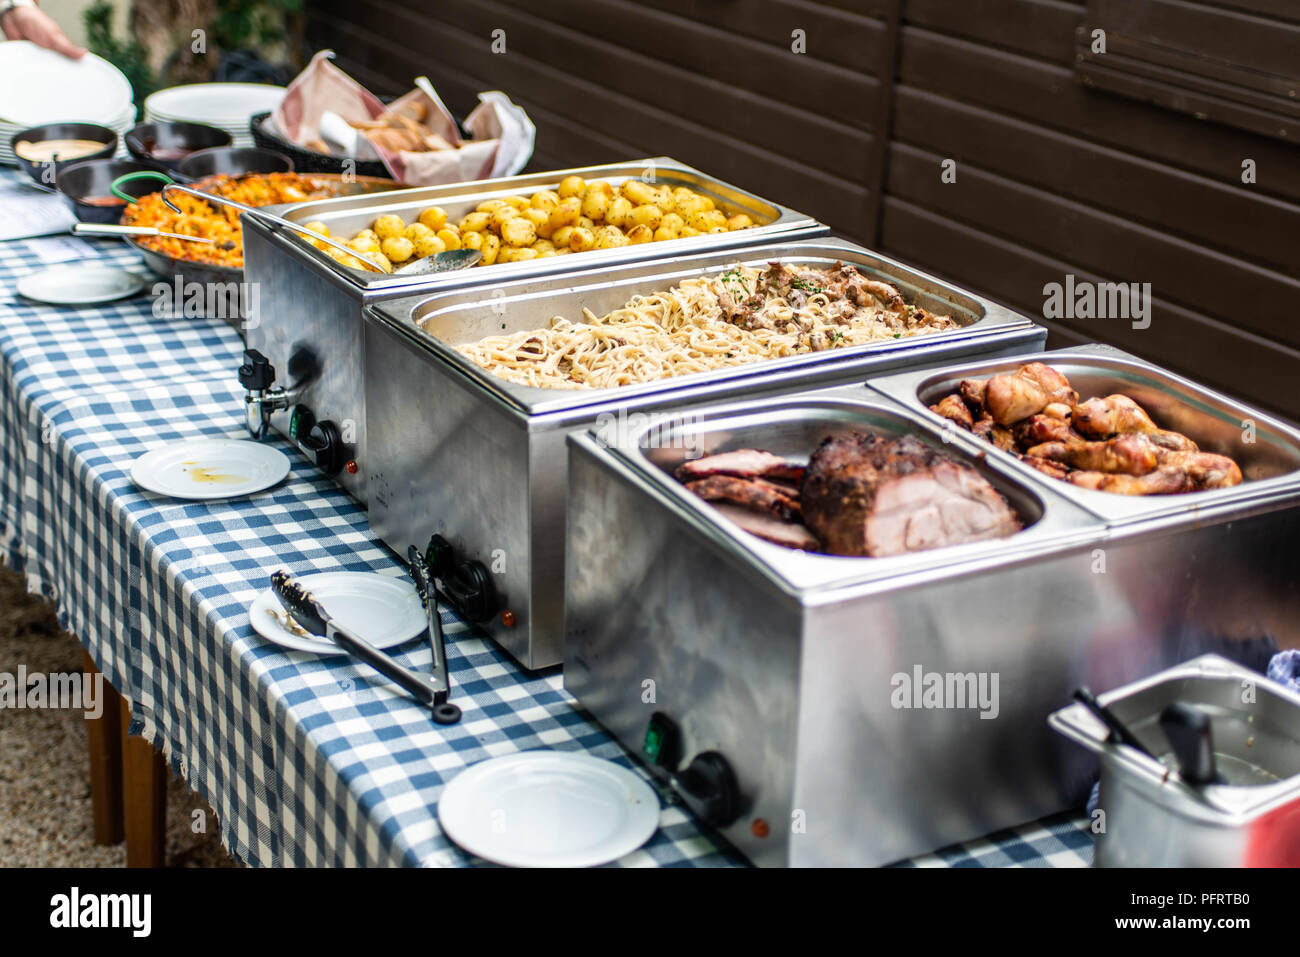 Merveilleux Party Brunch Big Buffet Table Setting With Food Meat ...